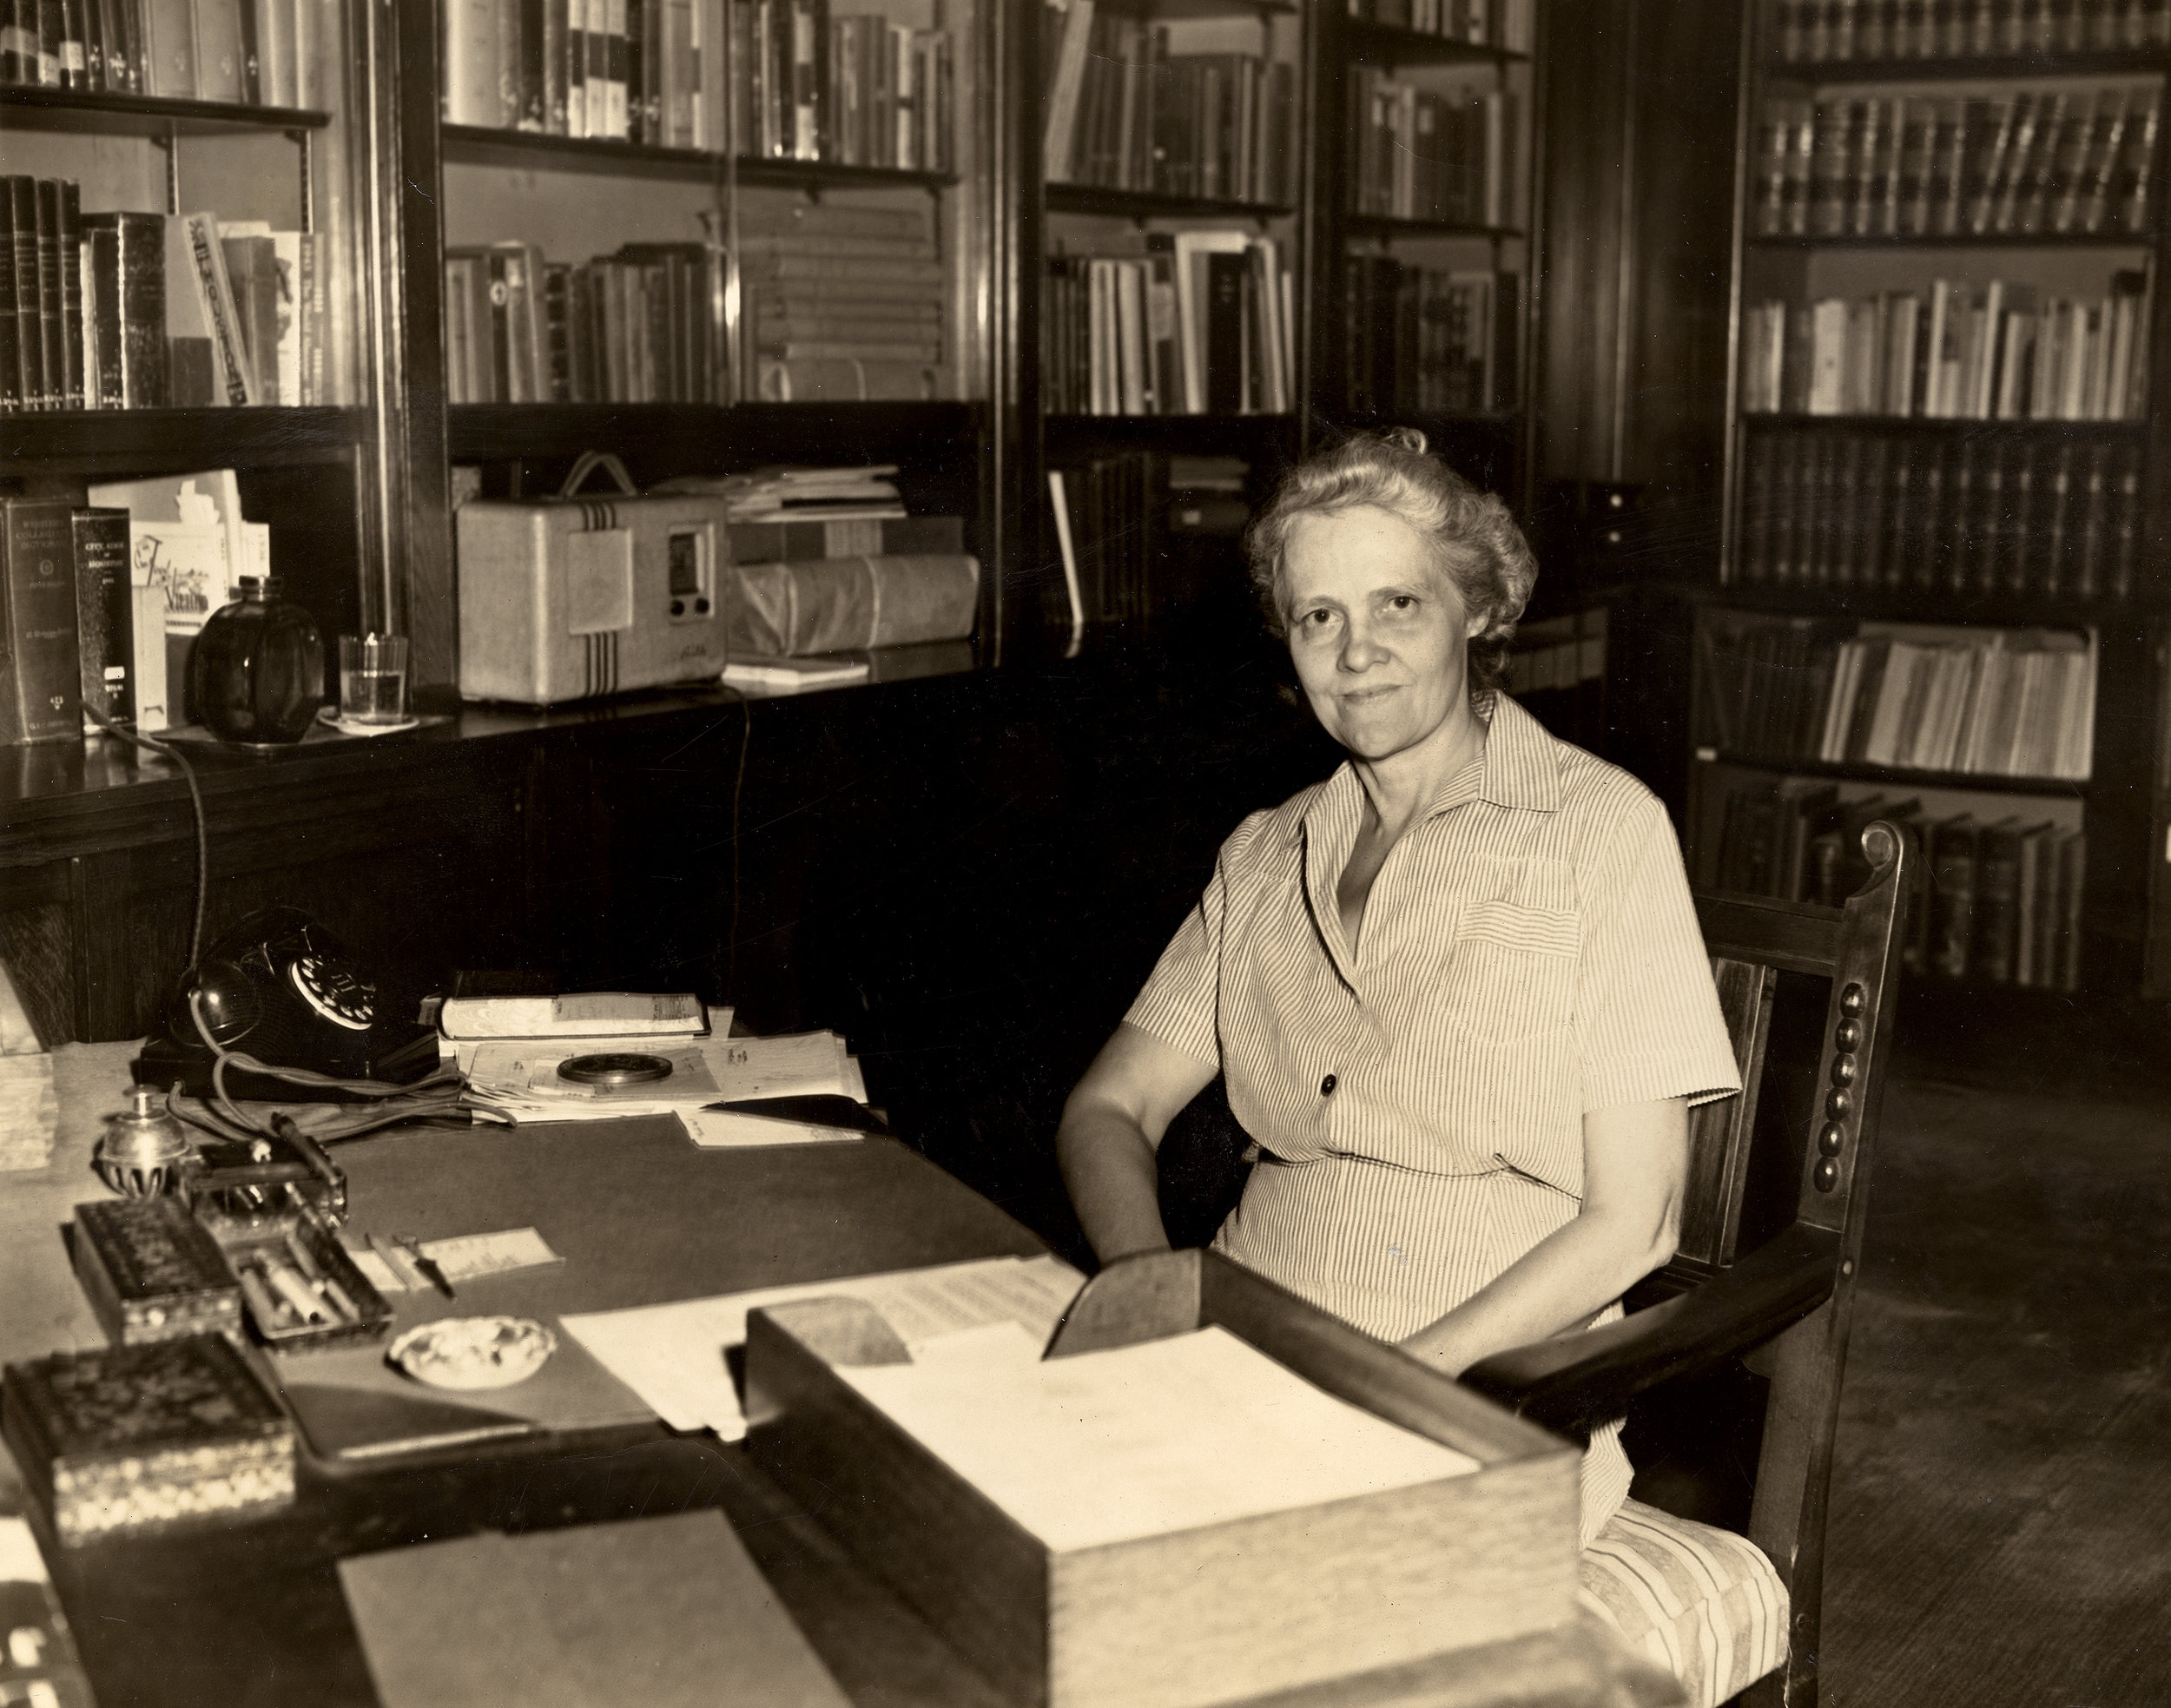 Julia Bedford Ideson, known as the first librarian of Houston